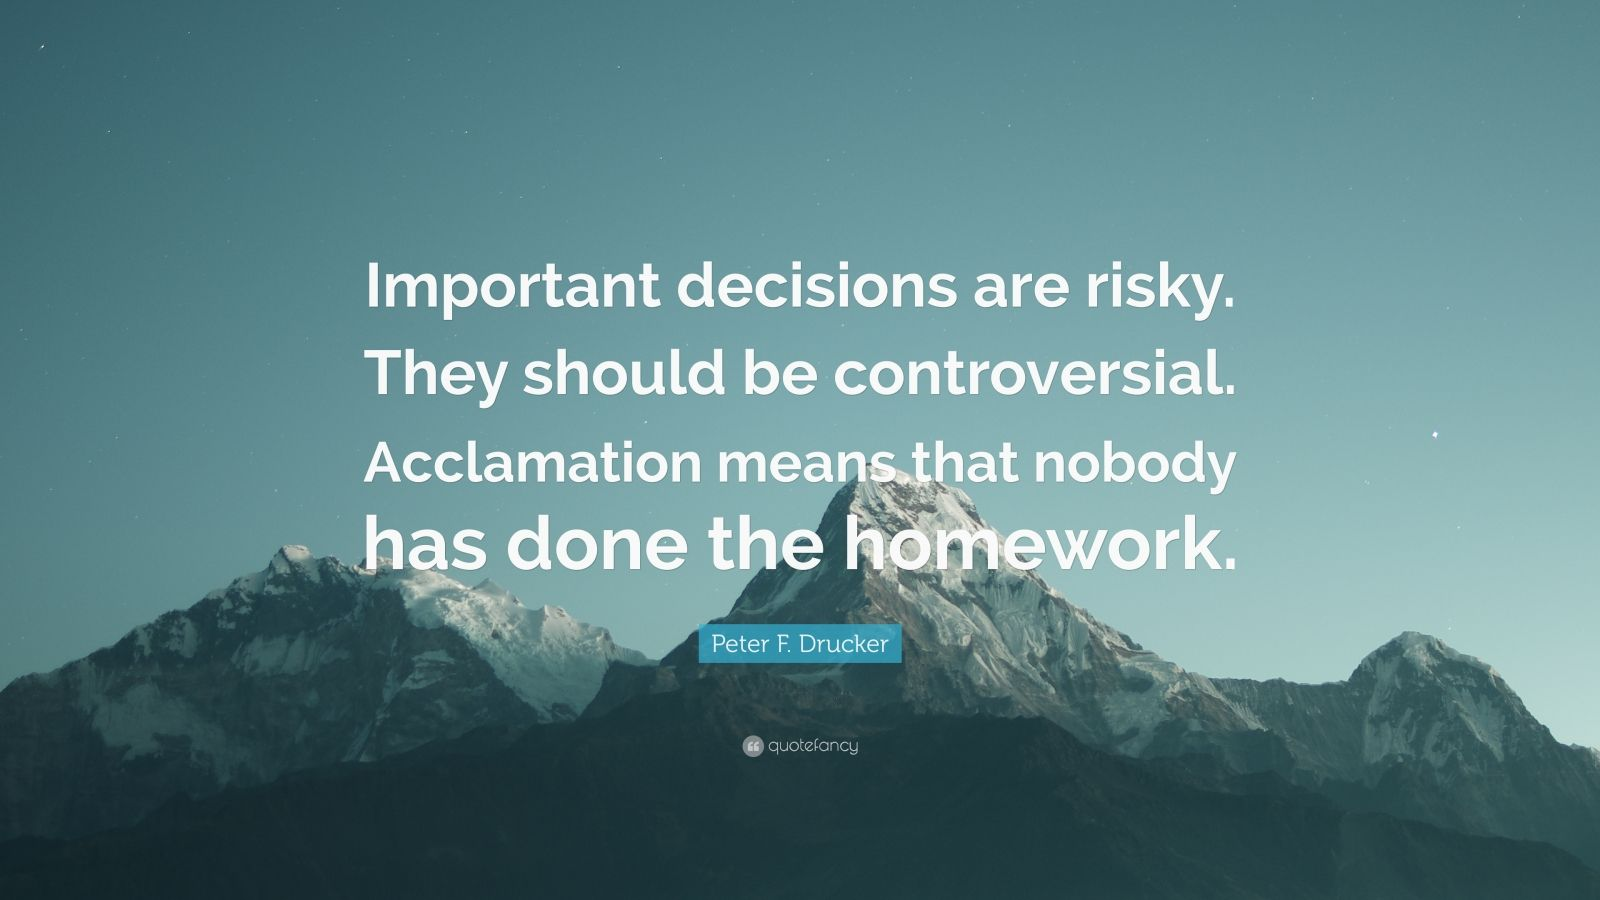 """Peter F. Drucker Quote: """"Important decisions are risky. They should be controversial. Acclamation means that nobody has done the homework."""""""